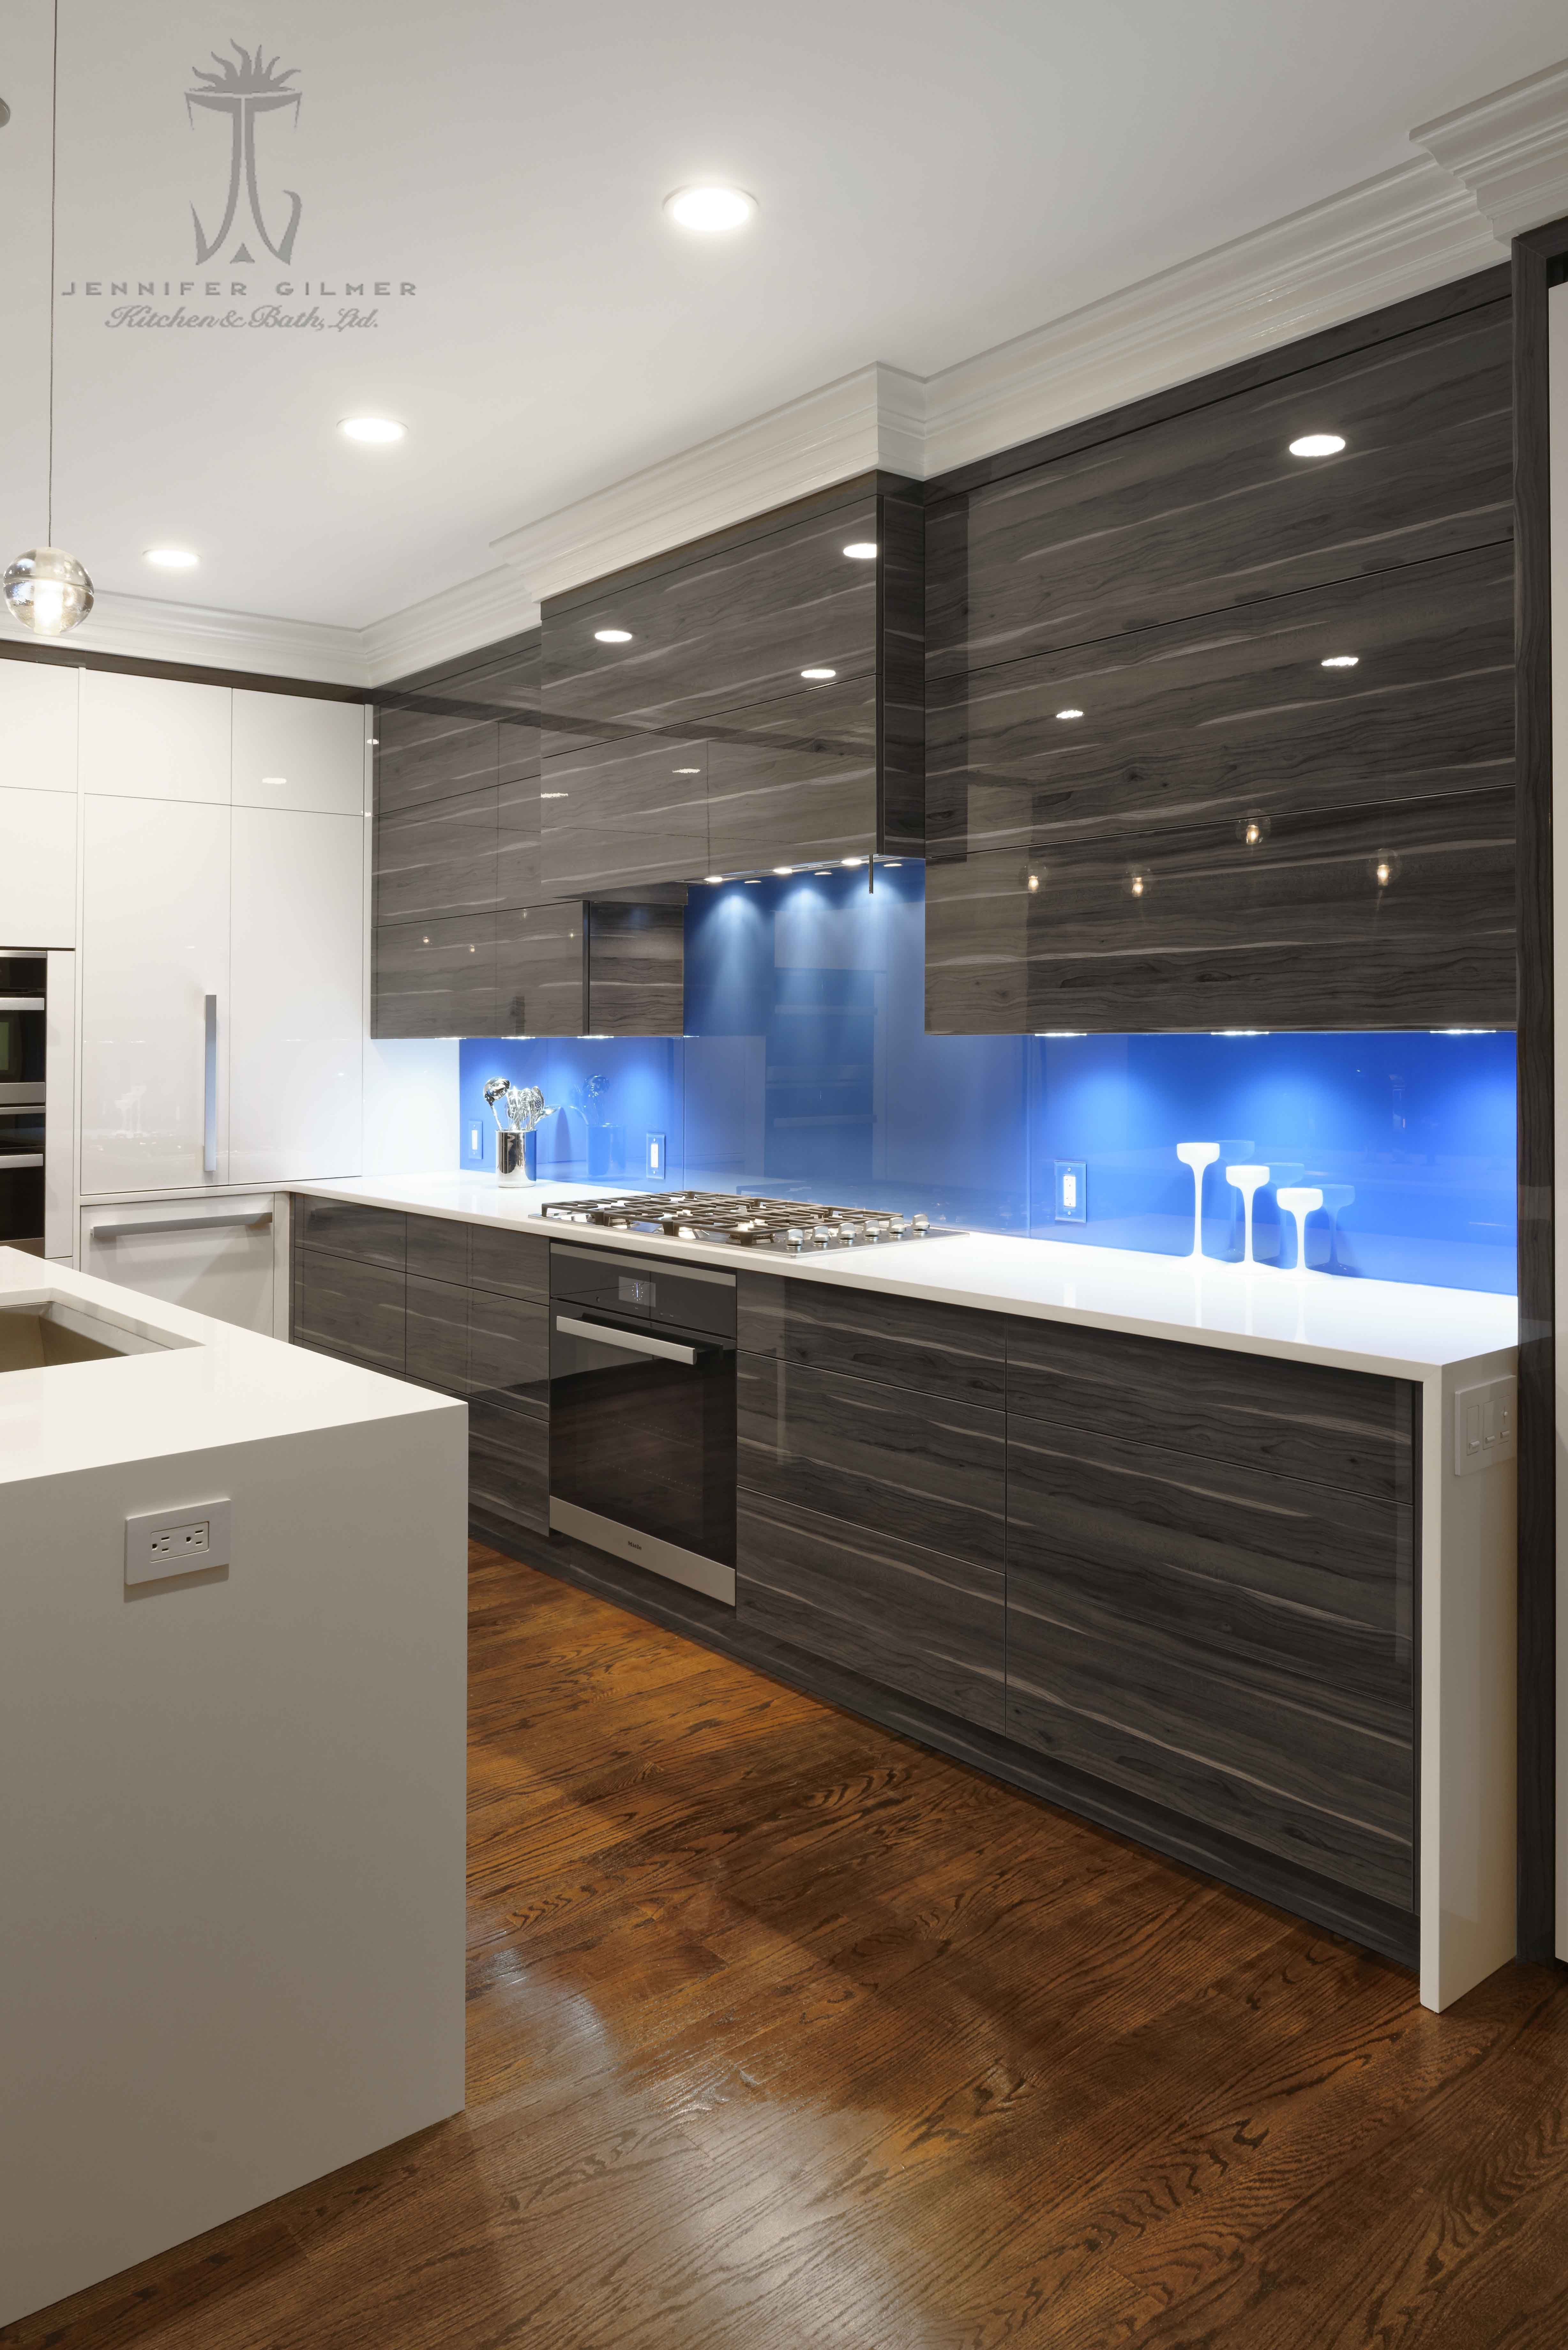 Kitchen In Bethesda, Maryland Designed By #PaulBentham4JenniferGilmer  Kitchen U0026 Bath Includes Miele DA5321 W